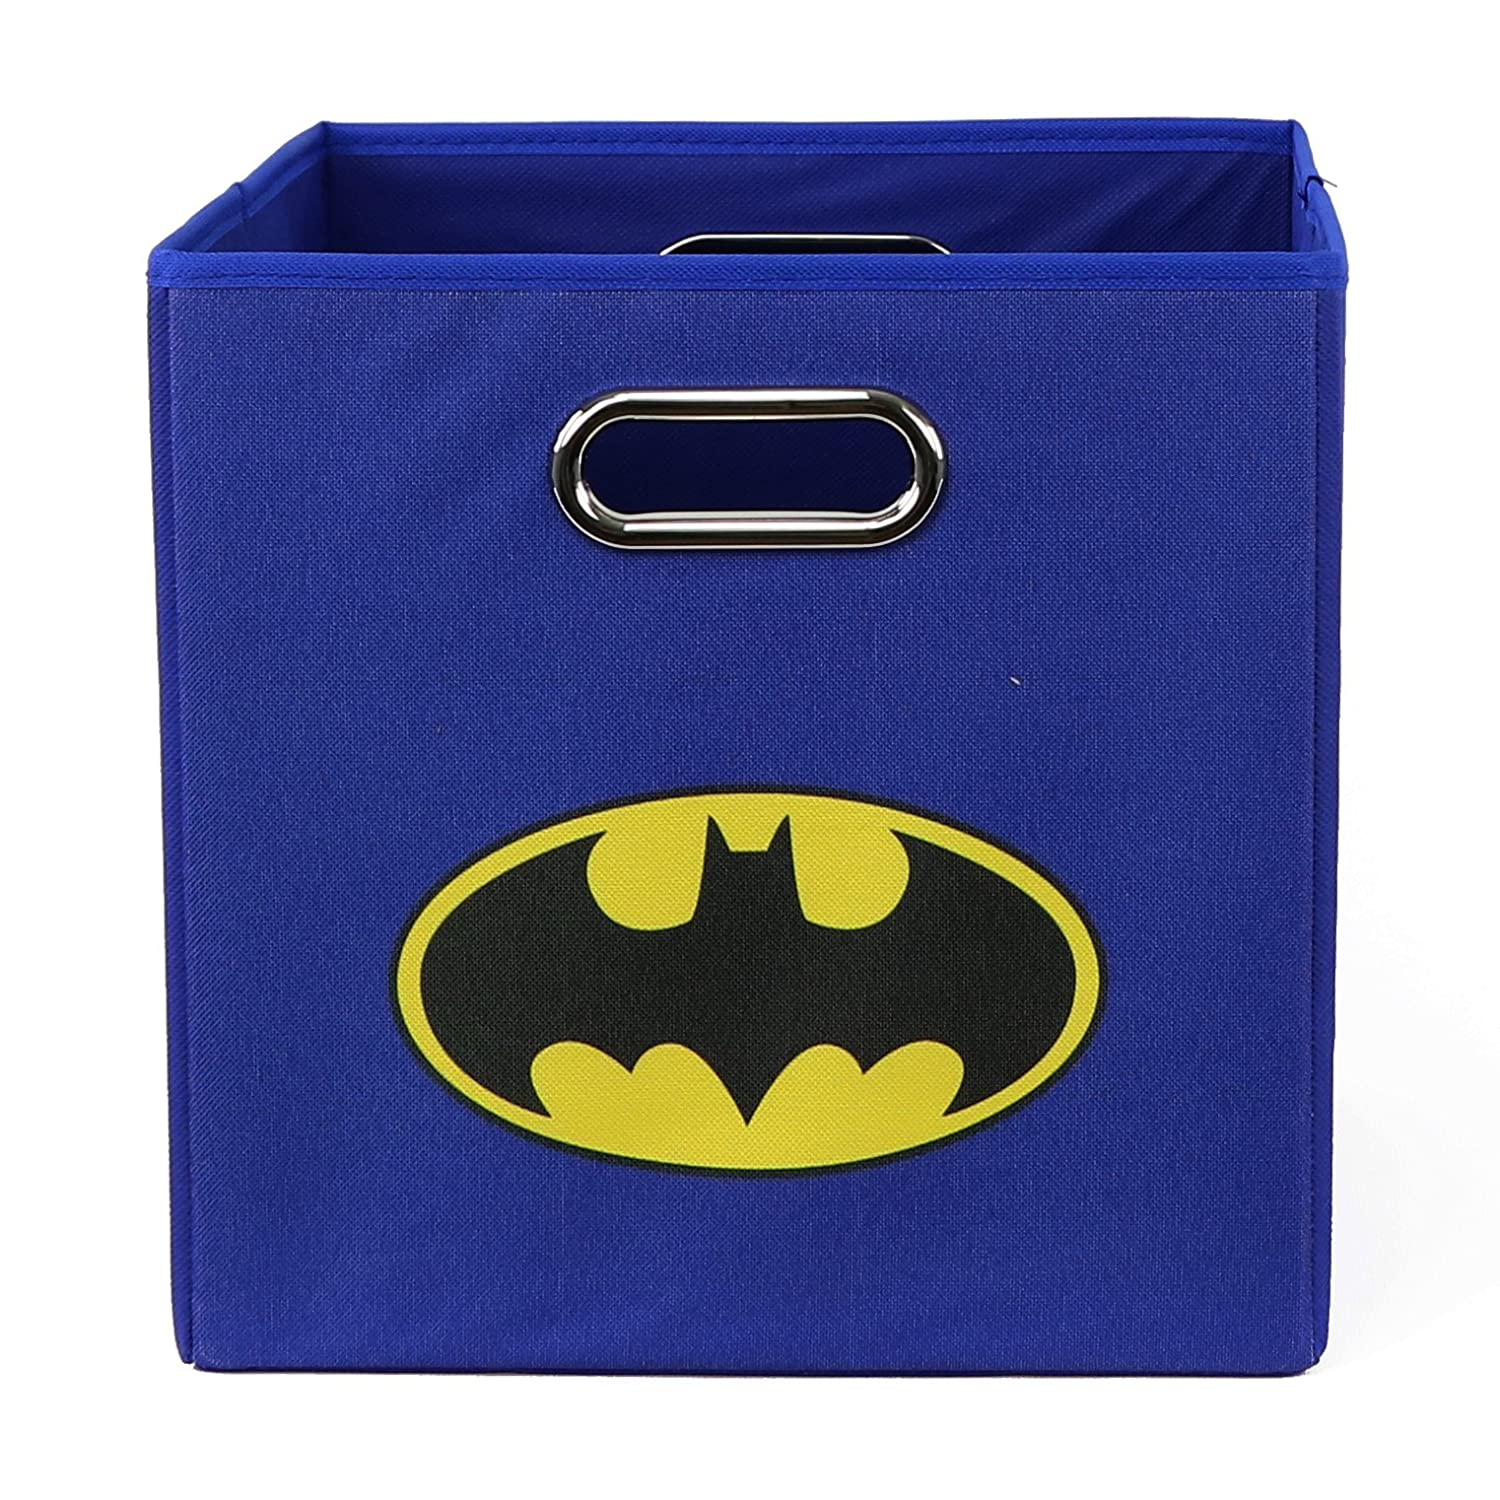 Batman Folding Storage Basket, Blue - Collapsible Storage Bin for Toys - Bedroom Organizer - Foldable Bin with Large Capacity. Kid's Room Decor